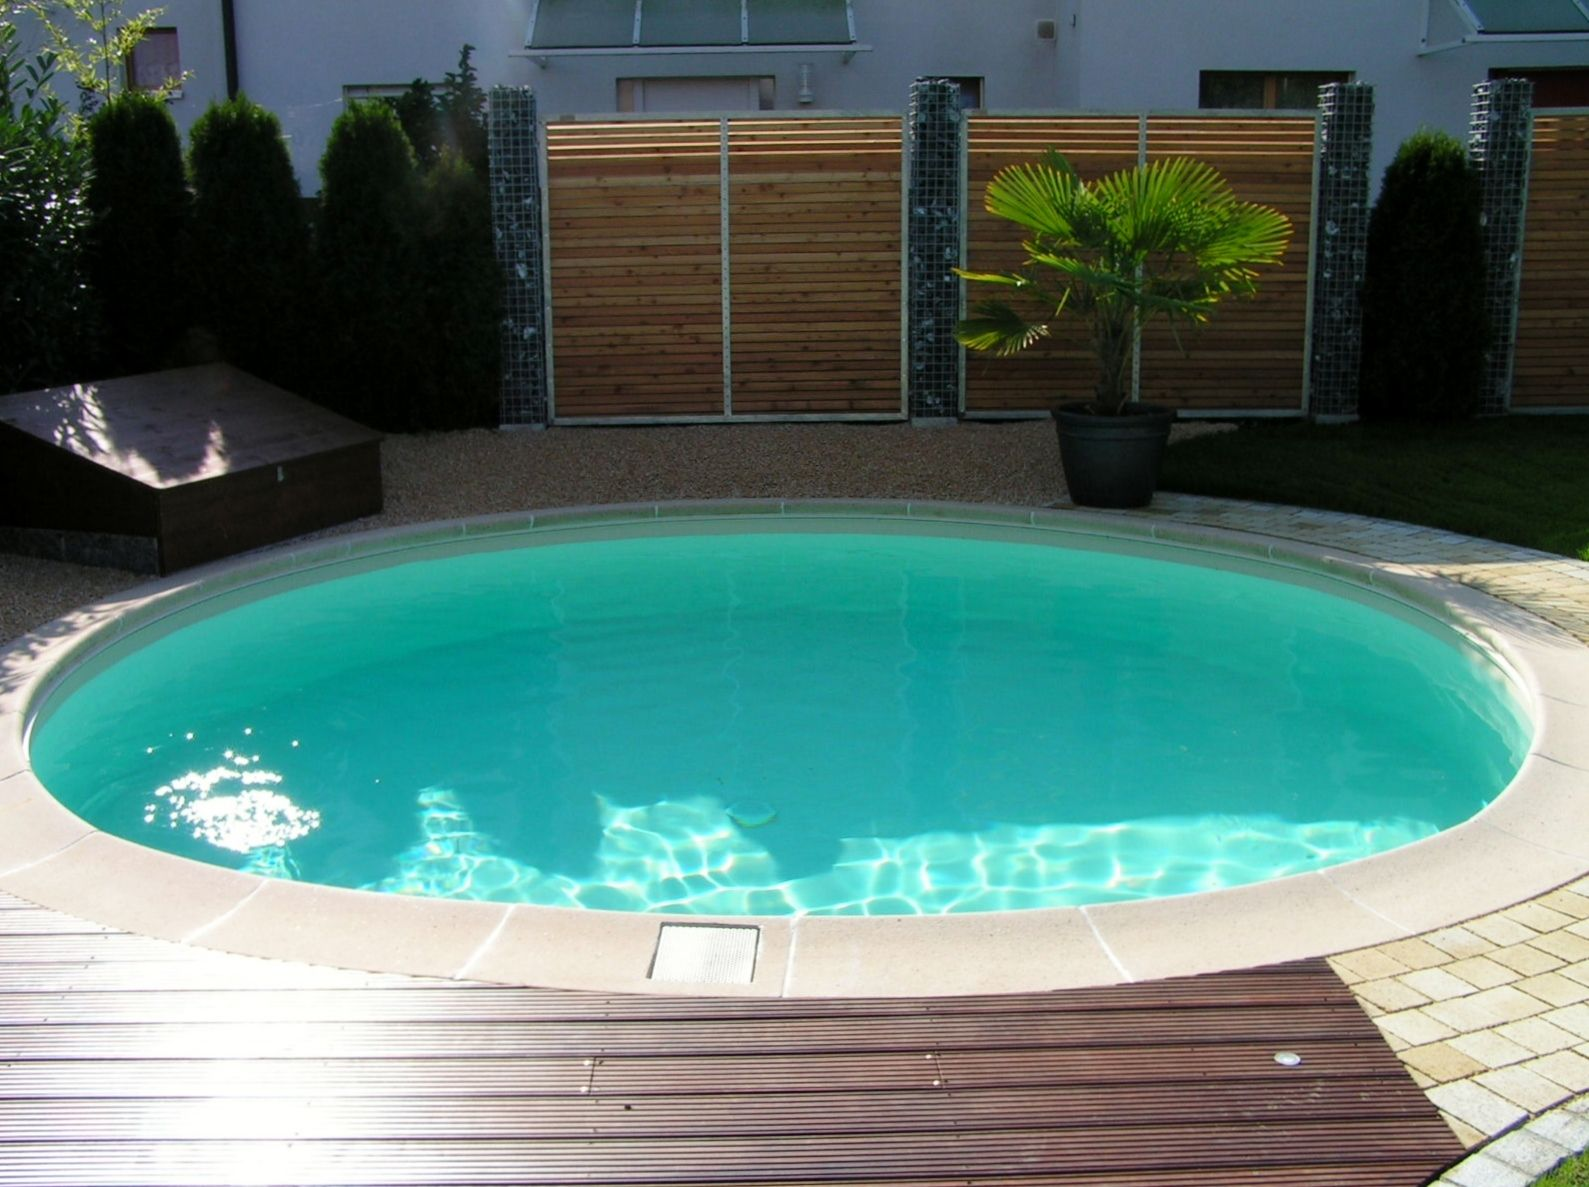 Oval Pool Bauen Video Bsw Web De Pools Schwimmbad Bauen Schwimmbad Planen